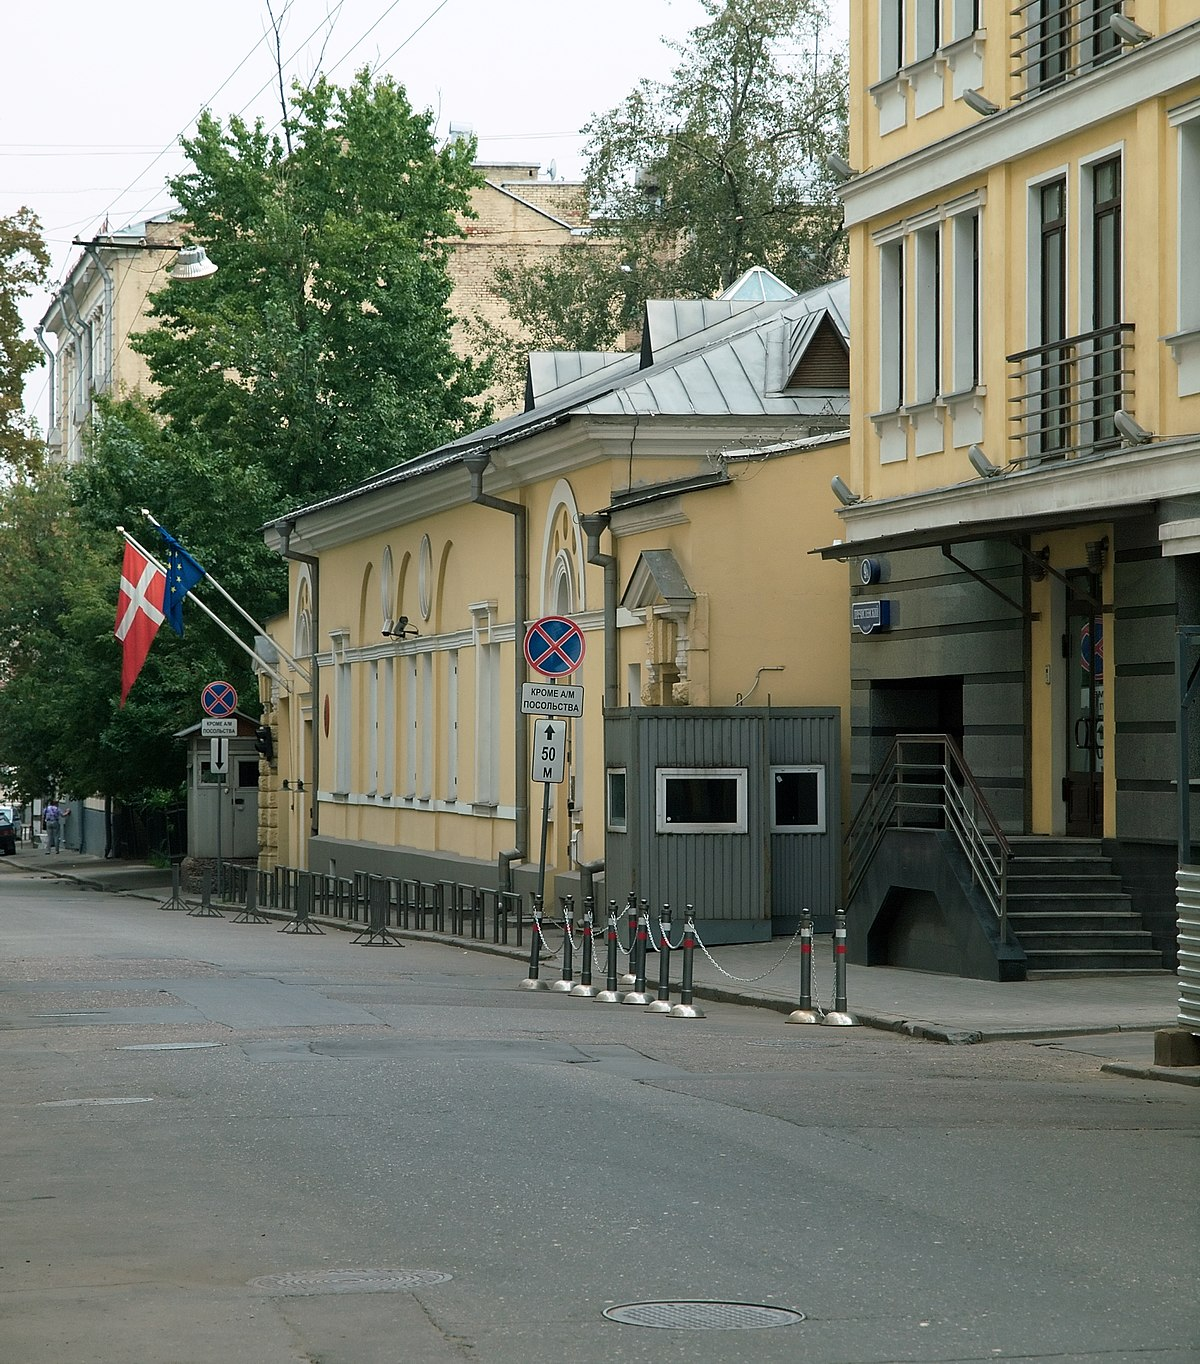 Australian Embassy in Moscow and St. Petersburg: addresses, opening hours 46